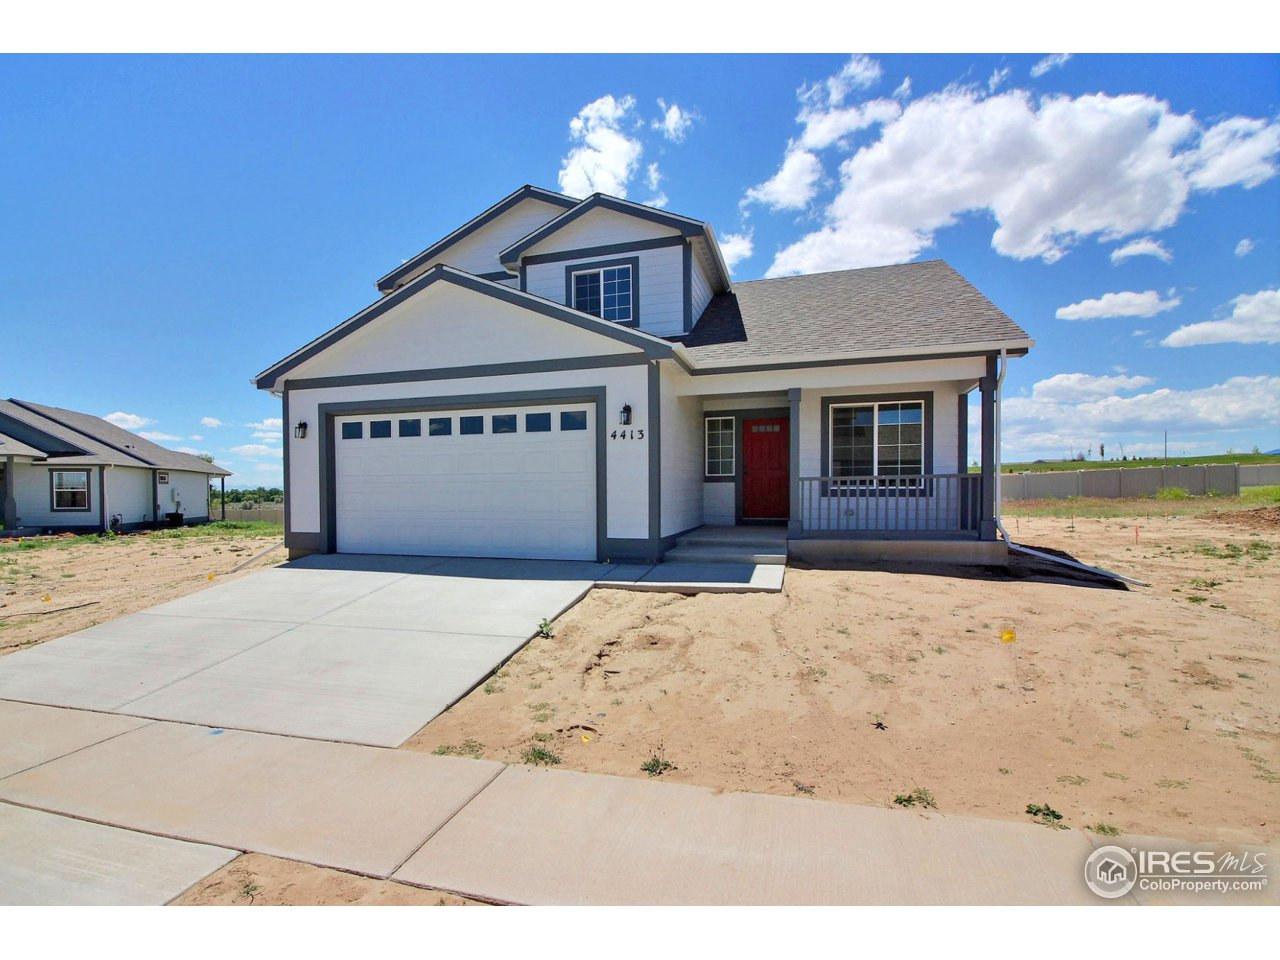 New construction two story with 1757 square ft. This home offers A/C, stainless steel appliances, tankless water heater, granite counters, engineered wood floor, garage door openers and much more. Set you showing up today! Pictures are like a house previously built. $5000.00 builder incentive is available if the buyer's use Tom Beck at Cornerstone. Home will be ready in October.